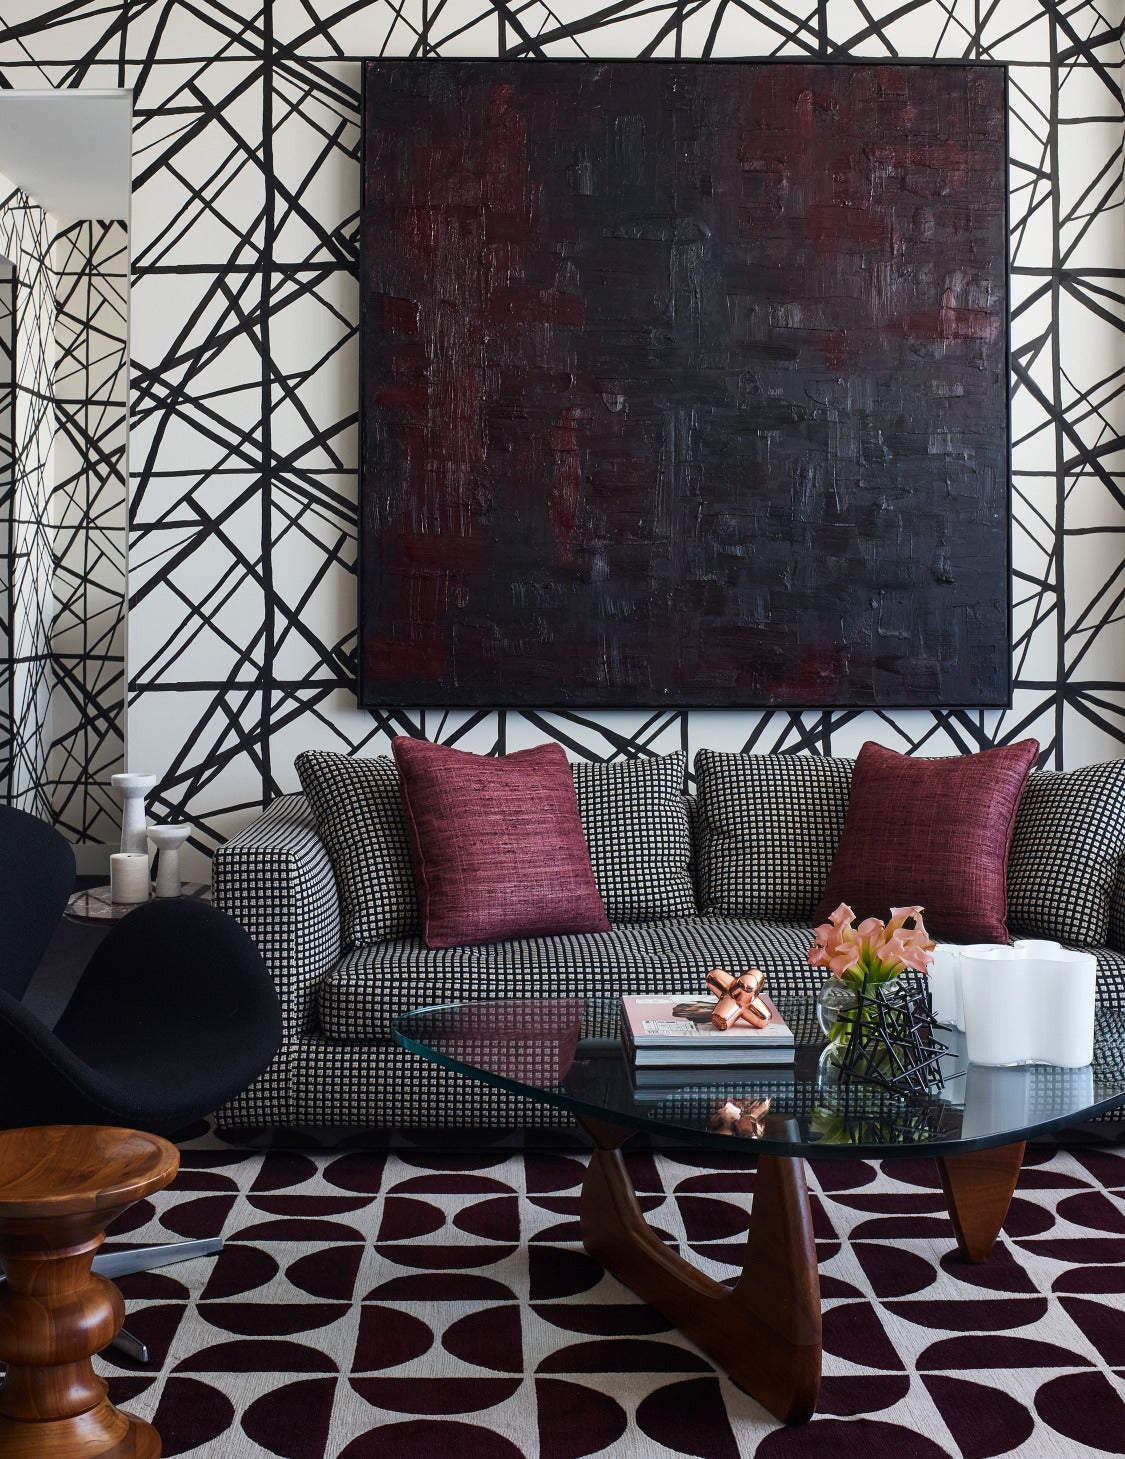 Statement Wallpaper - 7 Ways To Make a Statement In Your Living Room - LuxDeco.com Style Guide